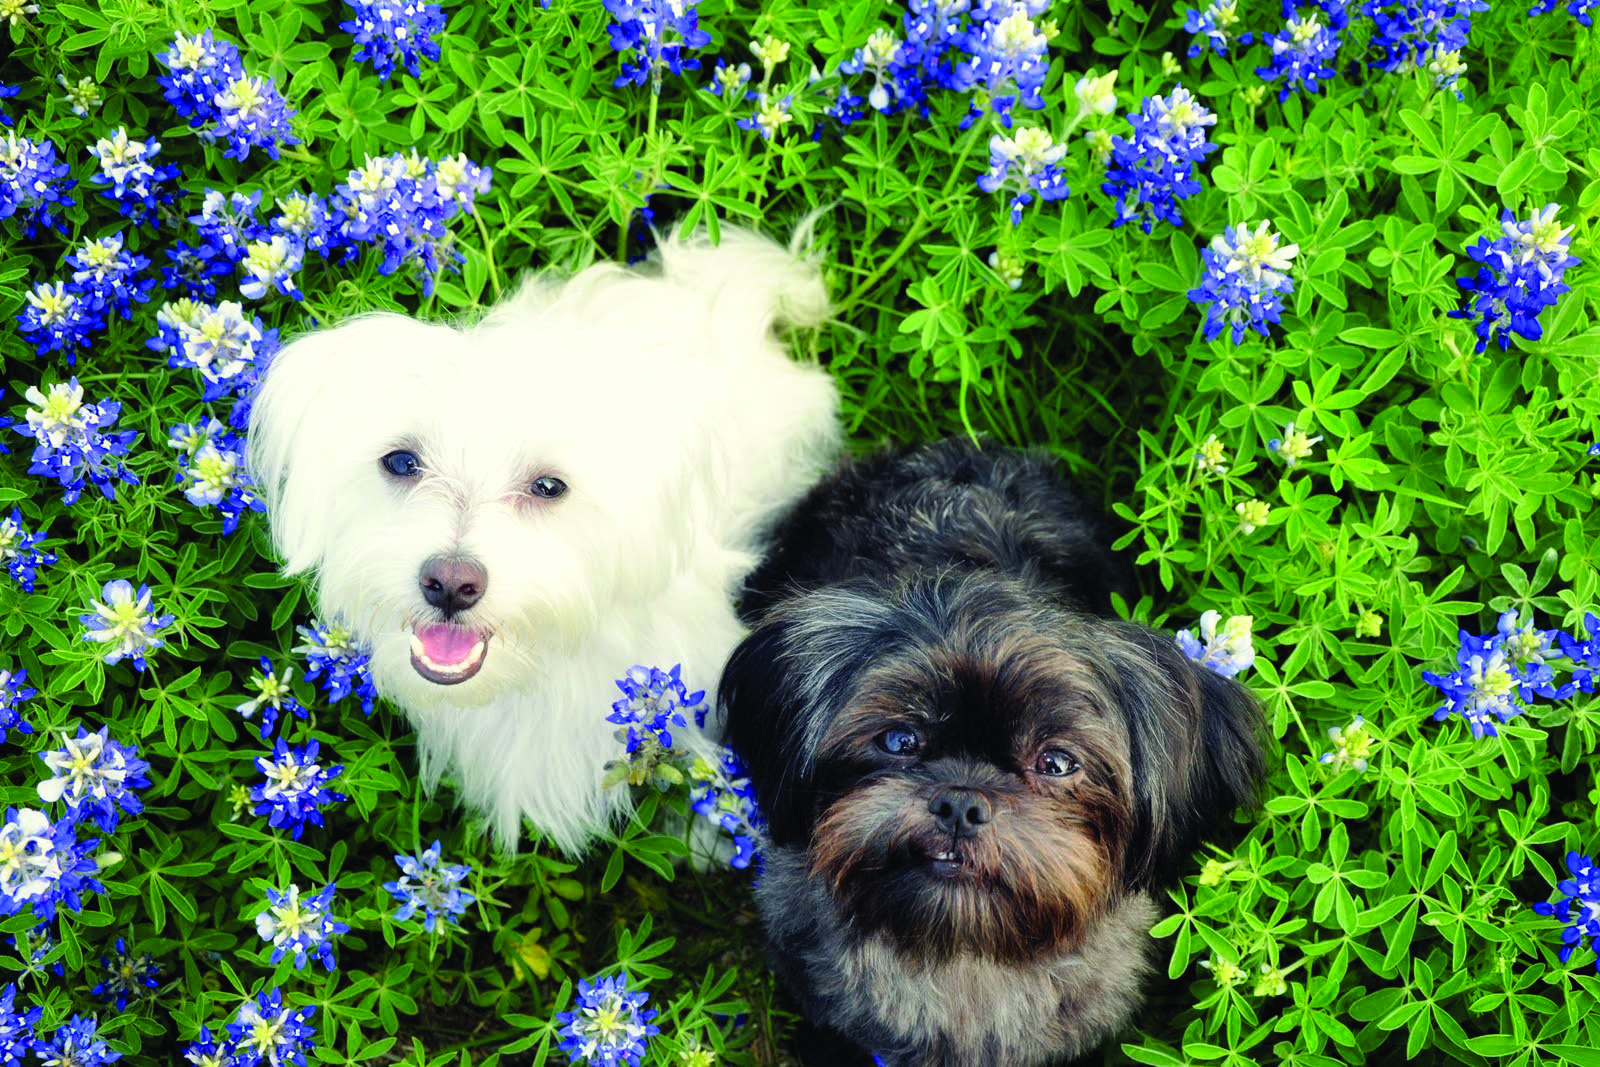 Enter your Pet's Photo in PetTalk's Annual Wildflower Photo Contest!